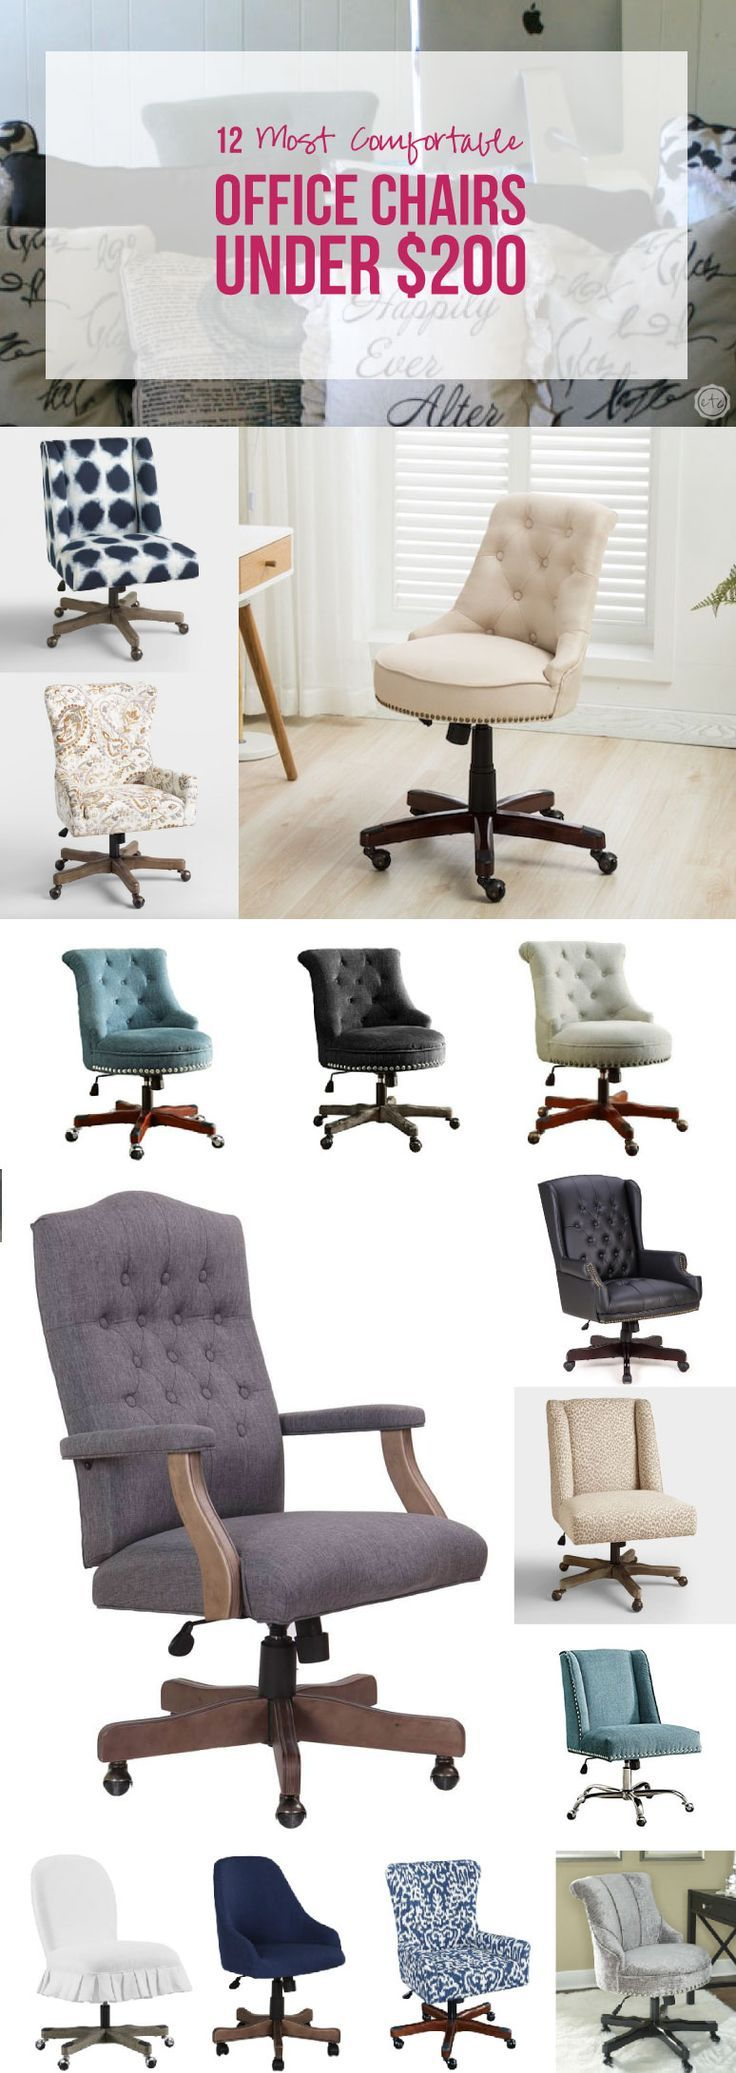 12 Most Comfortable Office Chairs Under 200 Most